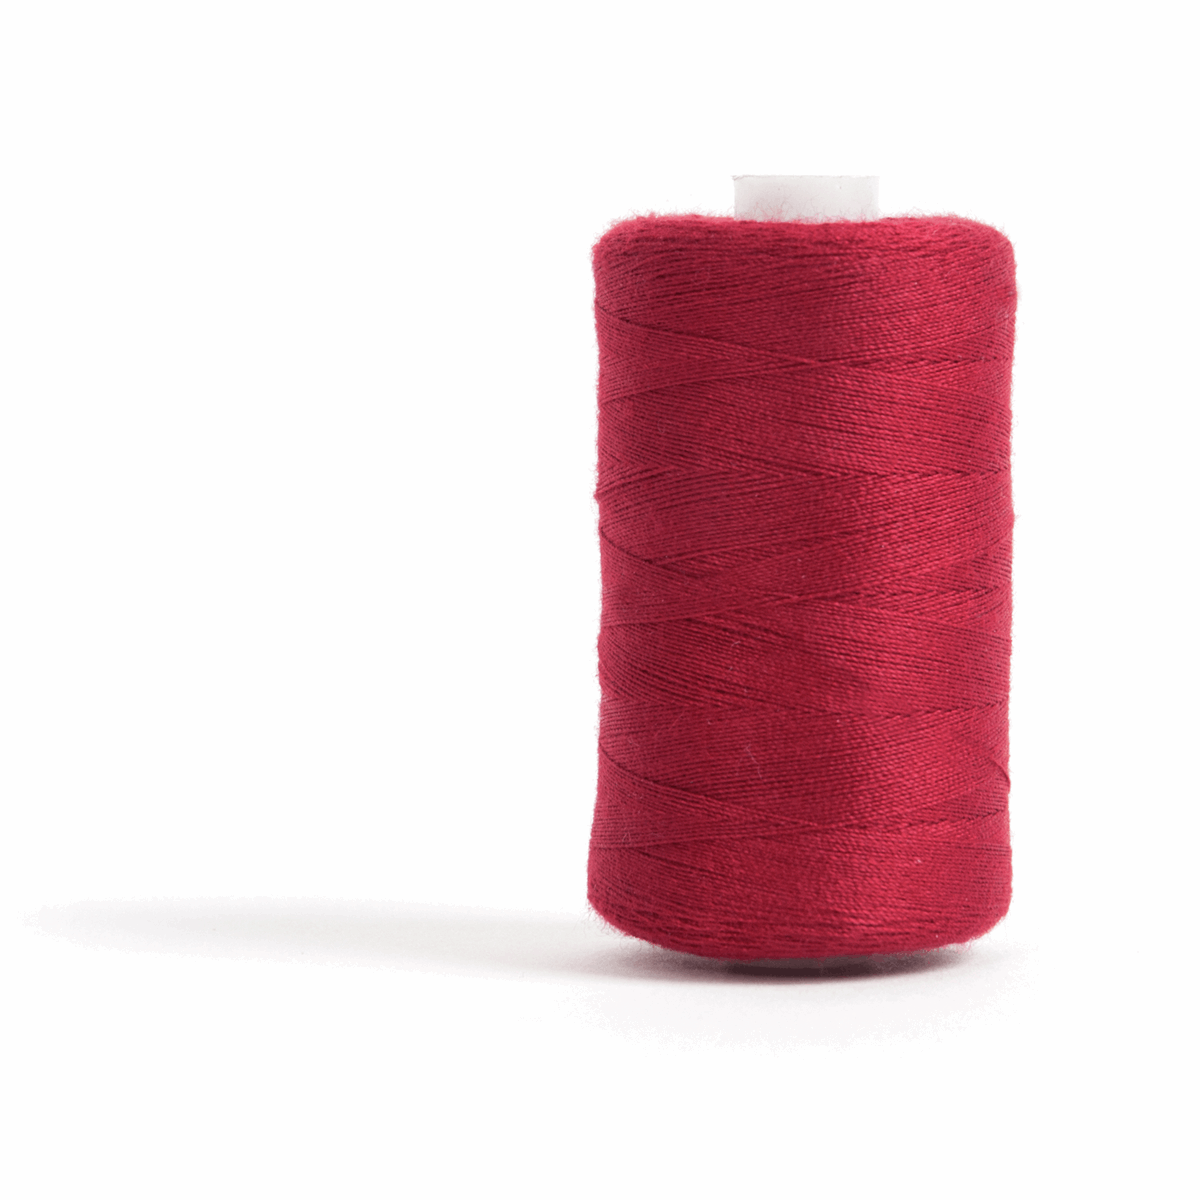 Picture of Sewing and Overlocking Thread: 5 x 1,000m: Dark Red